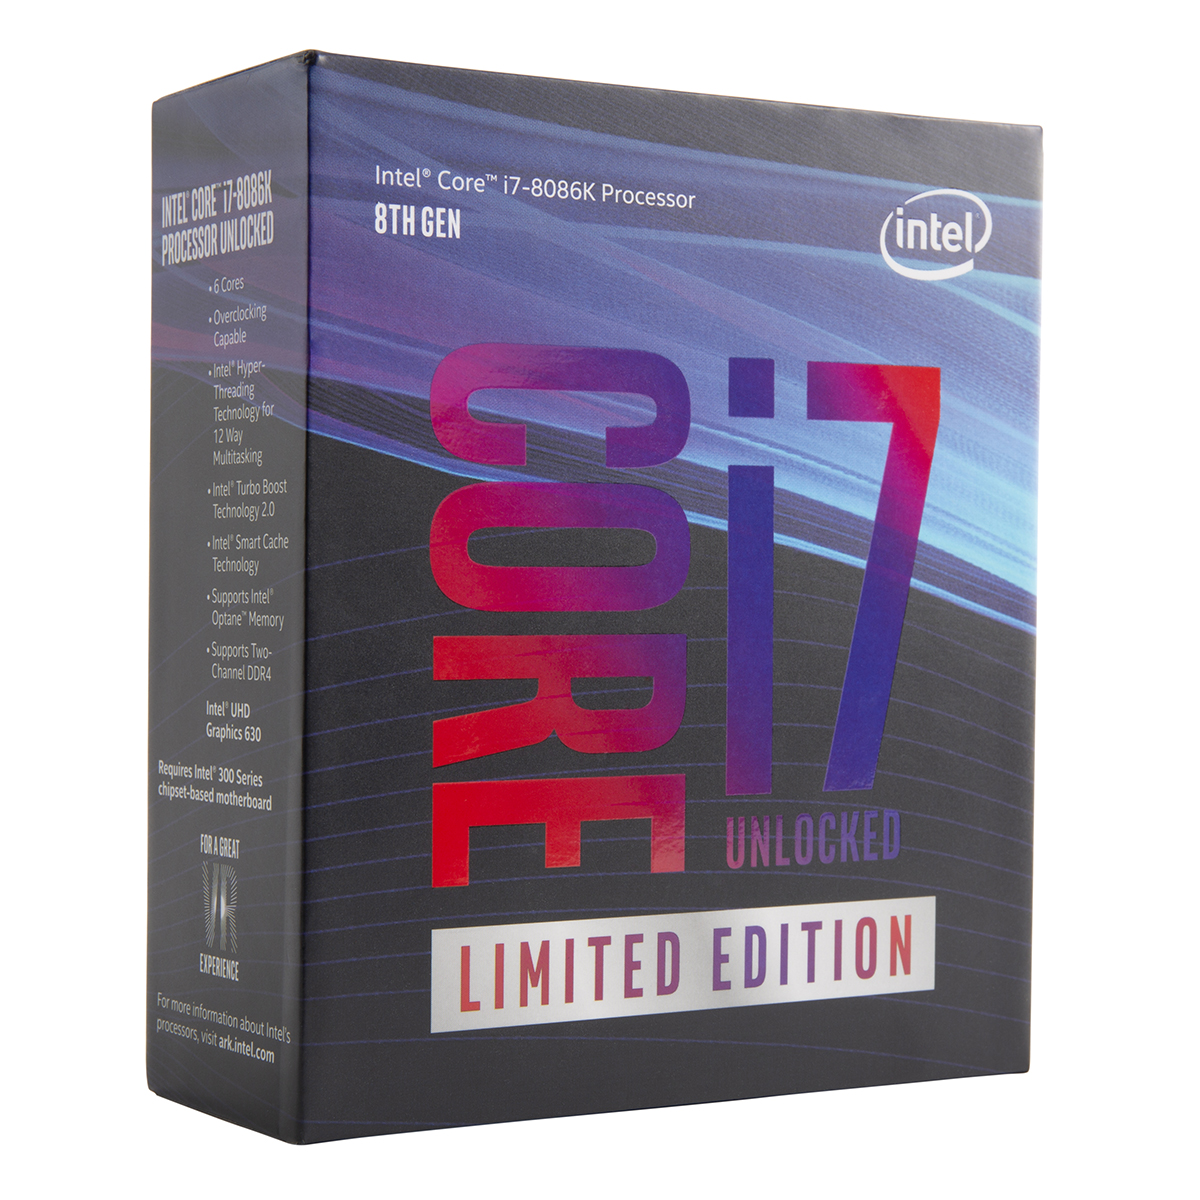 Processeur Intel Core i7-8086K (4.0 GHz) - Limited Edition 40th Anniversary Processeur 6-Core Socket 1151 Cache L3 12 Mo Intel UHD Graphics 630 0.014 micron (version boîte sans ventilateur - garantie Intel 3 ans)